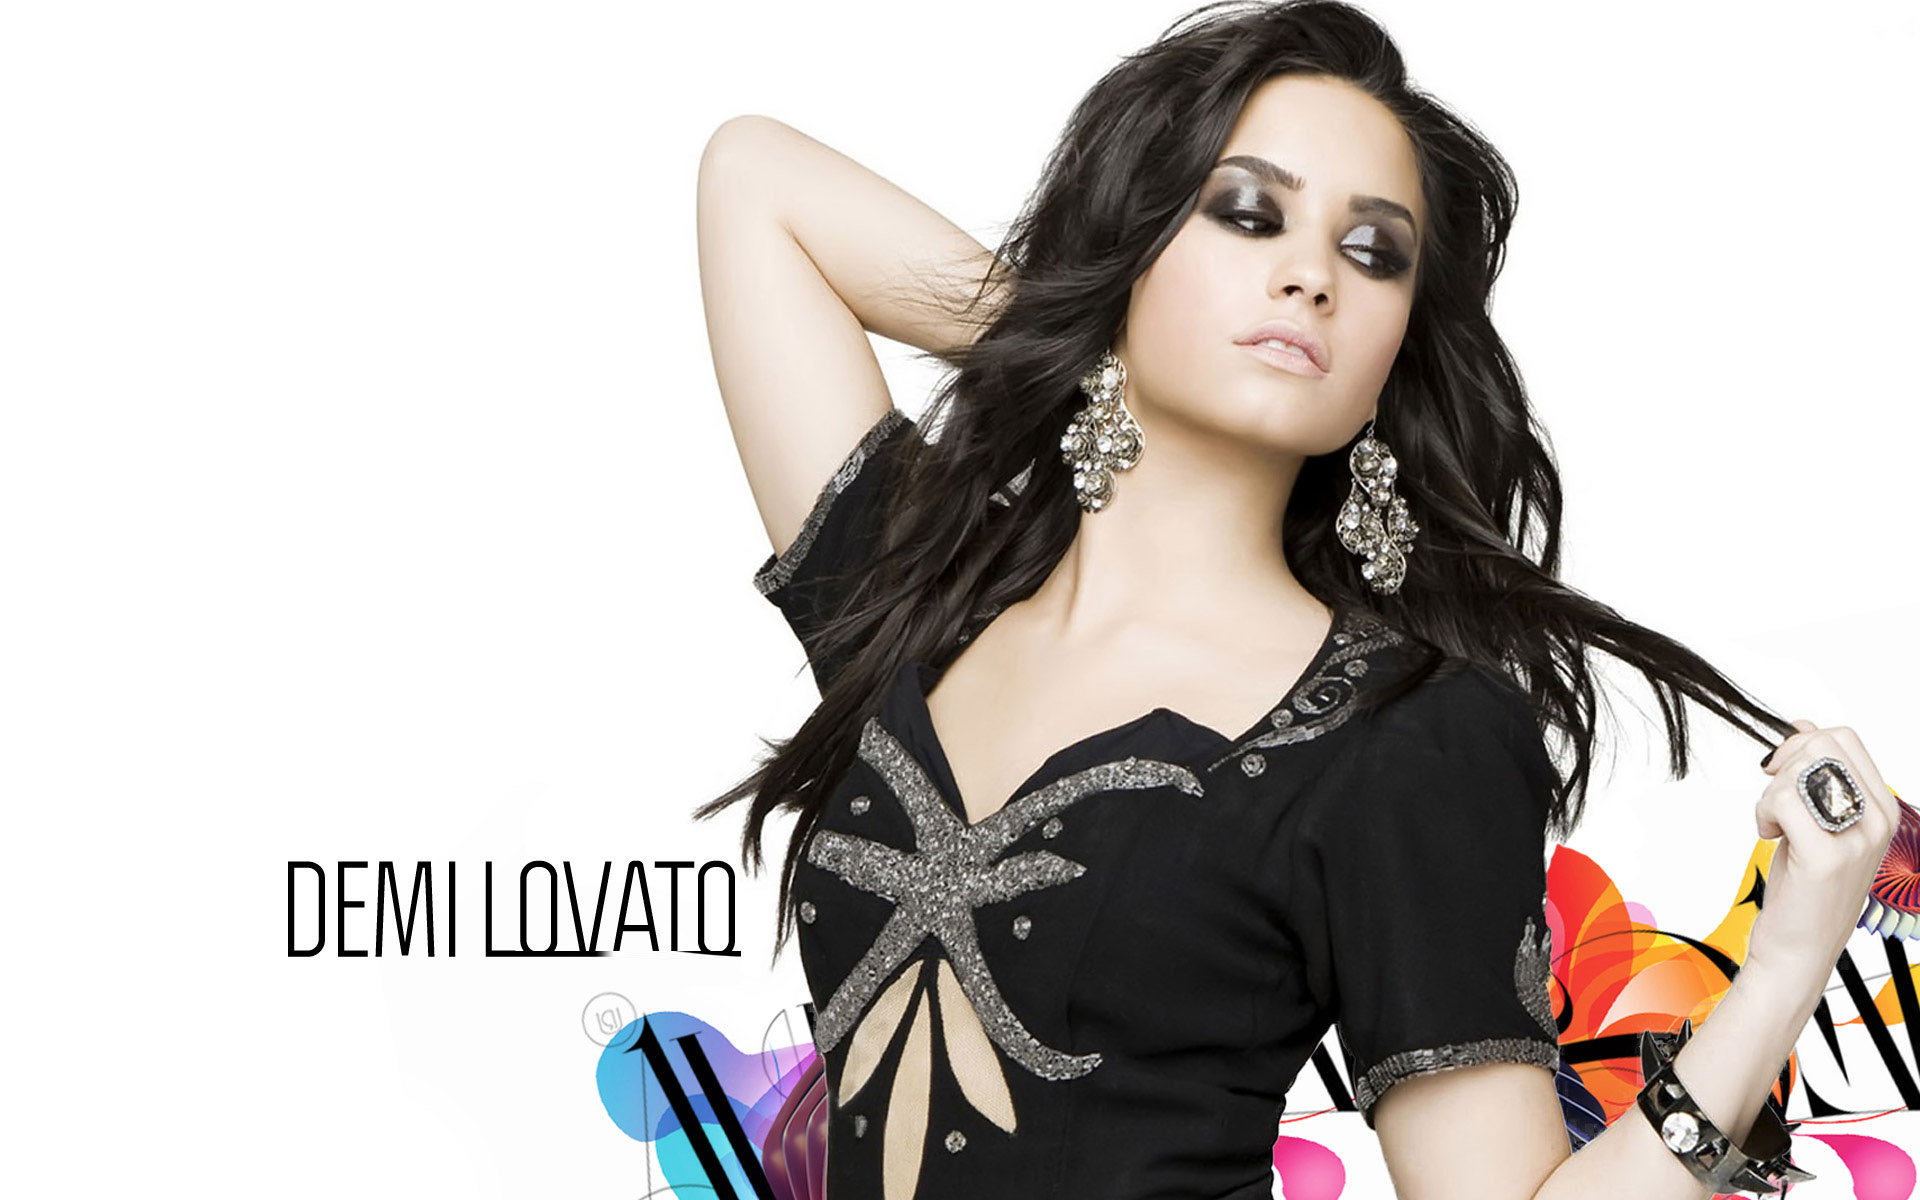 Demi Lovato Wallpaper 1920x1200